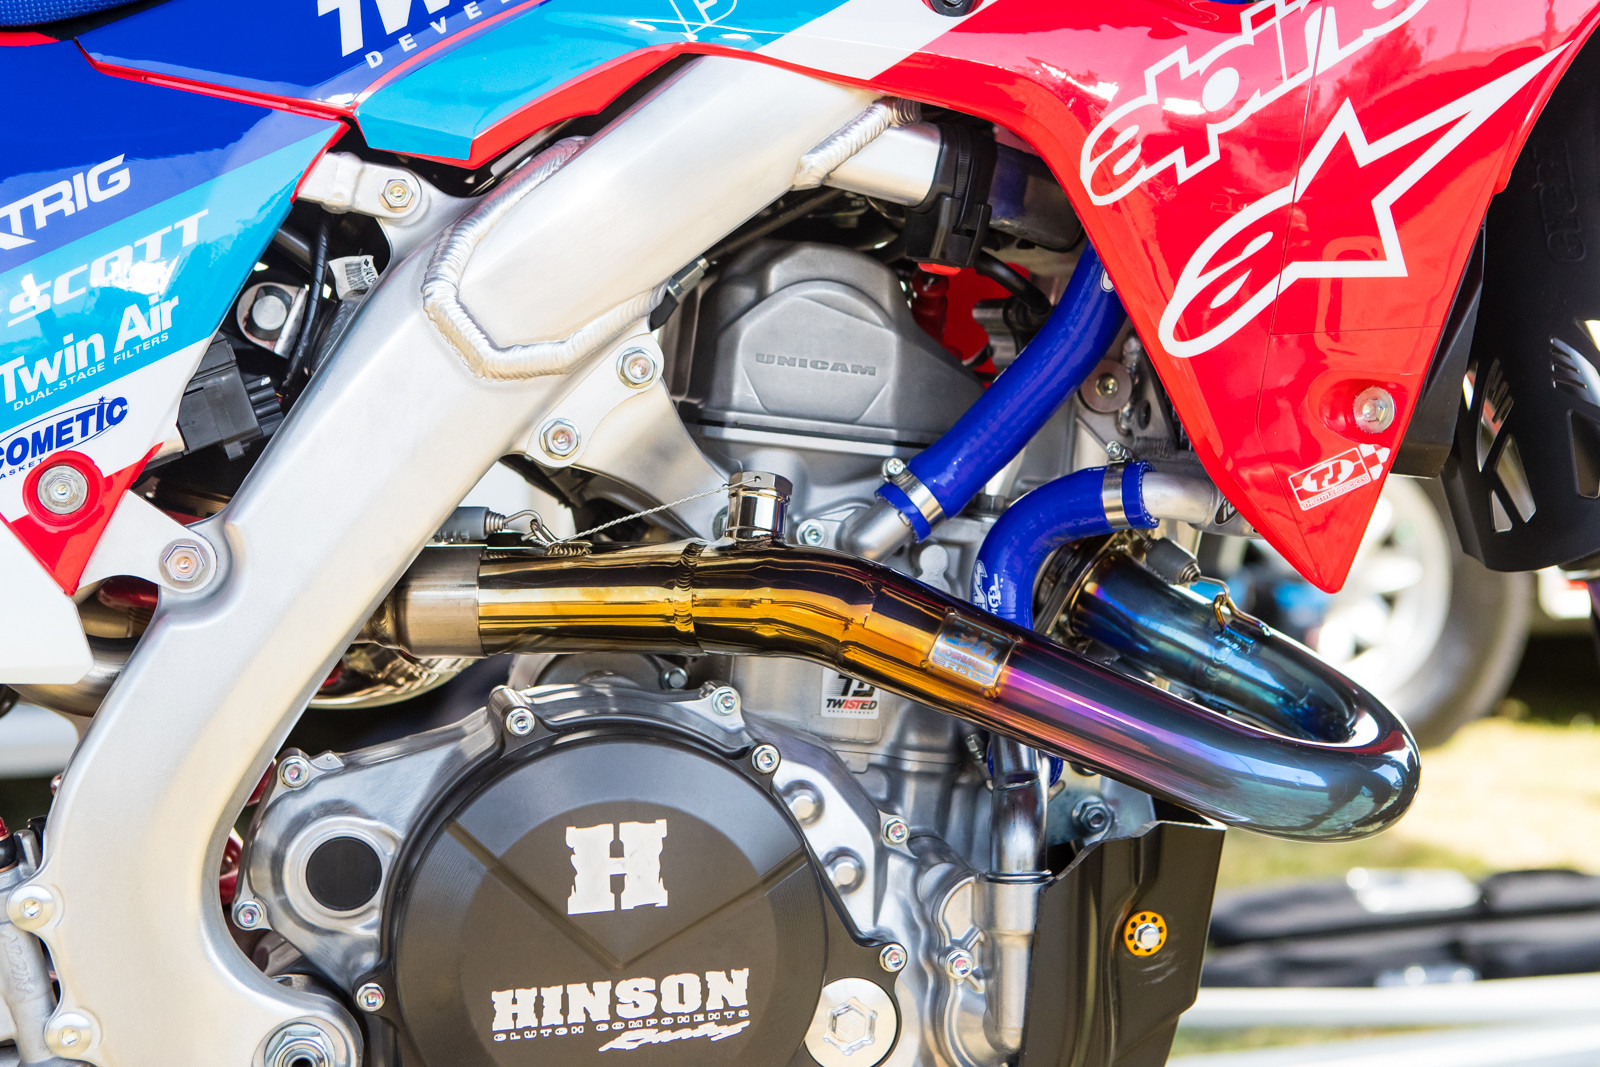 Yoshimura dialed him in, along with a few teams, with these polished titanium headpipes. Who wants one?